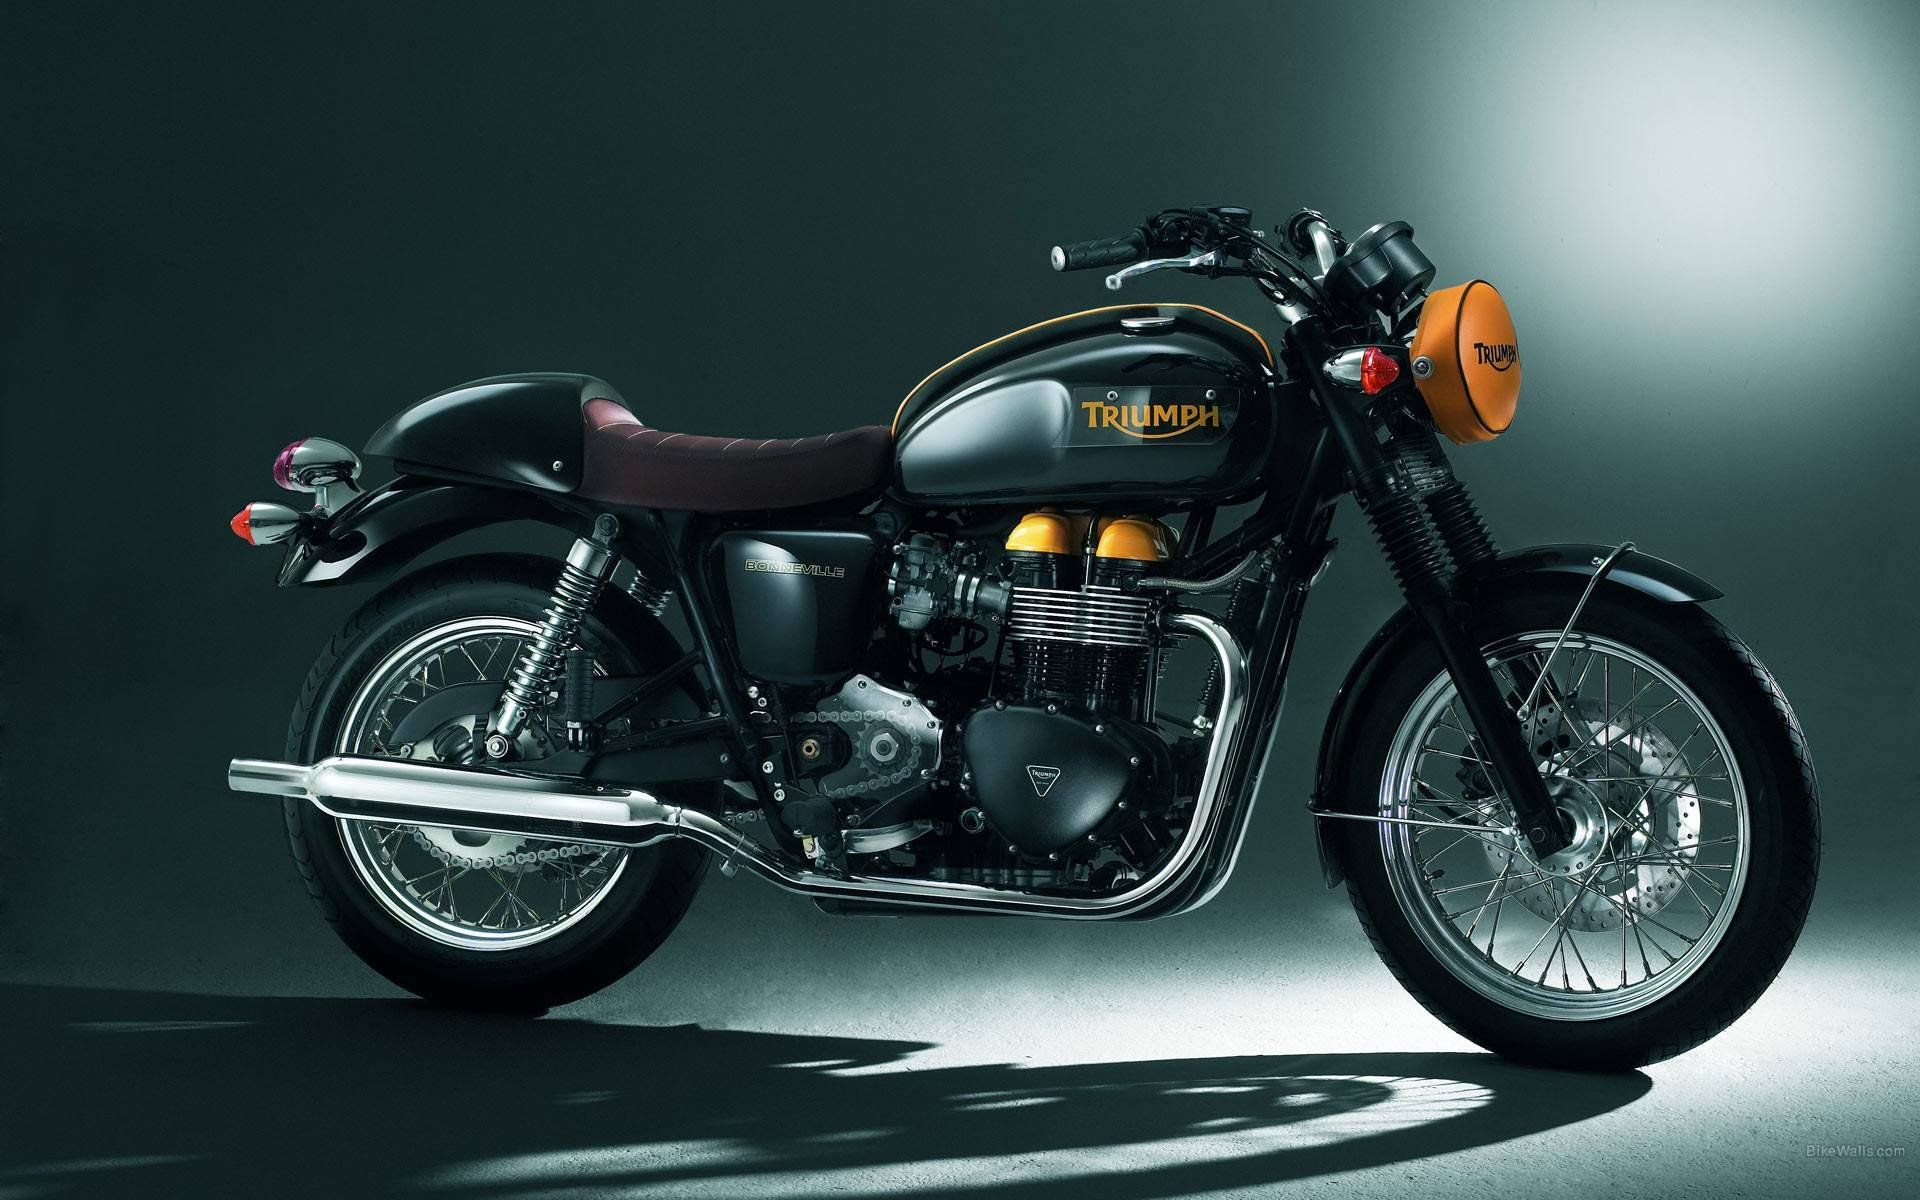 Triumph Bike Wallpaper HD Get Free Top Quality For Your Desktop PC Background Ios Or Android Mobile Phones At